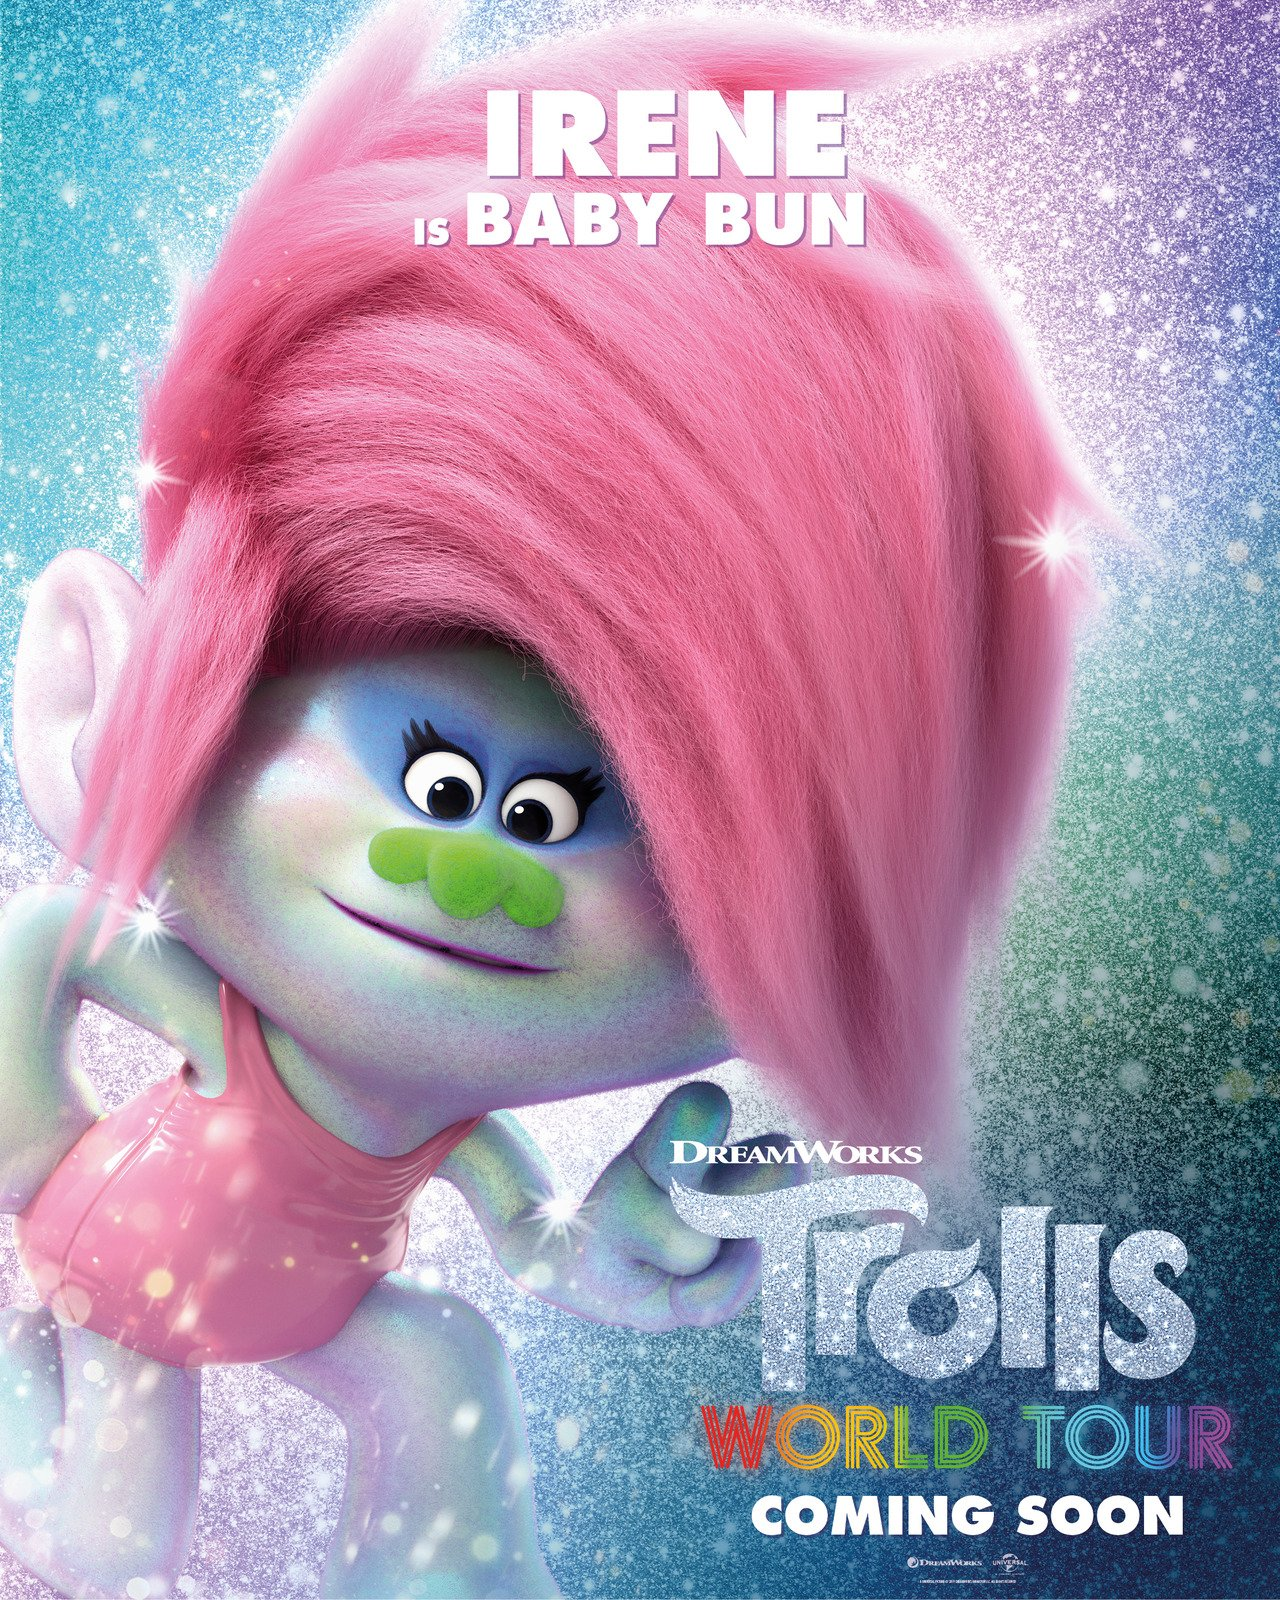 Red Velvet Introduces Their Characters From Upcoming Dreamworks Film Trolls World Tour Soompi